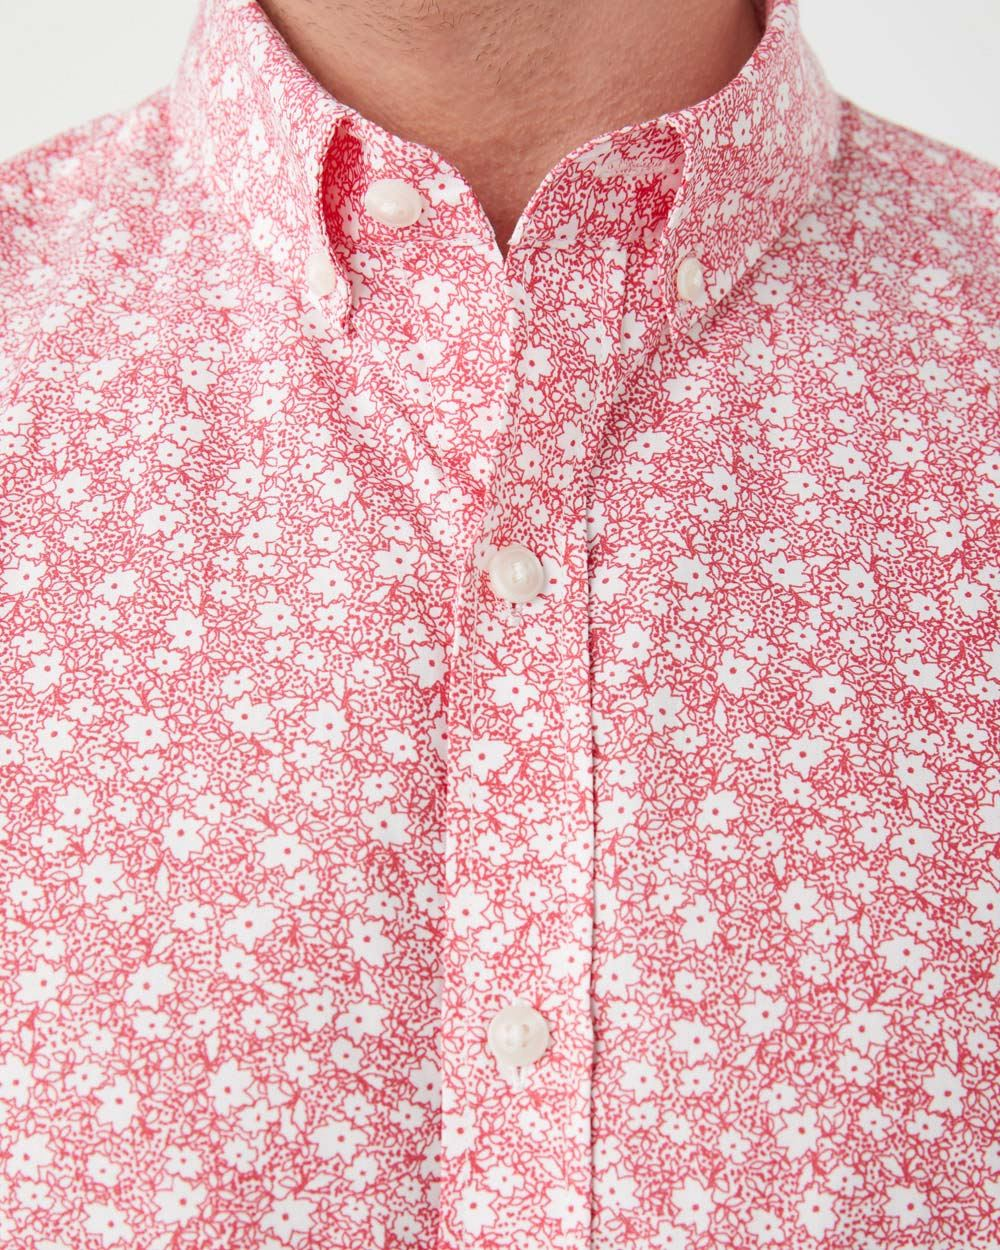 Tailored Fit Short Sleeve white floral Shirt